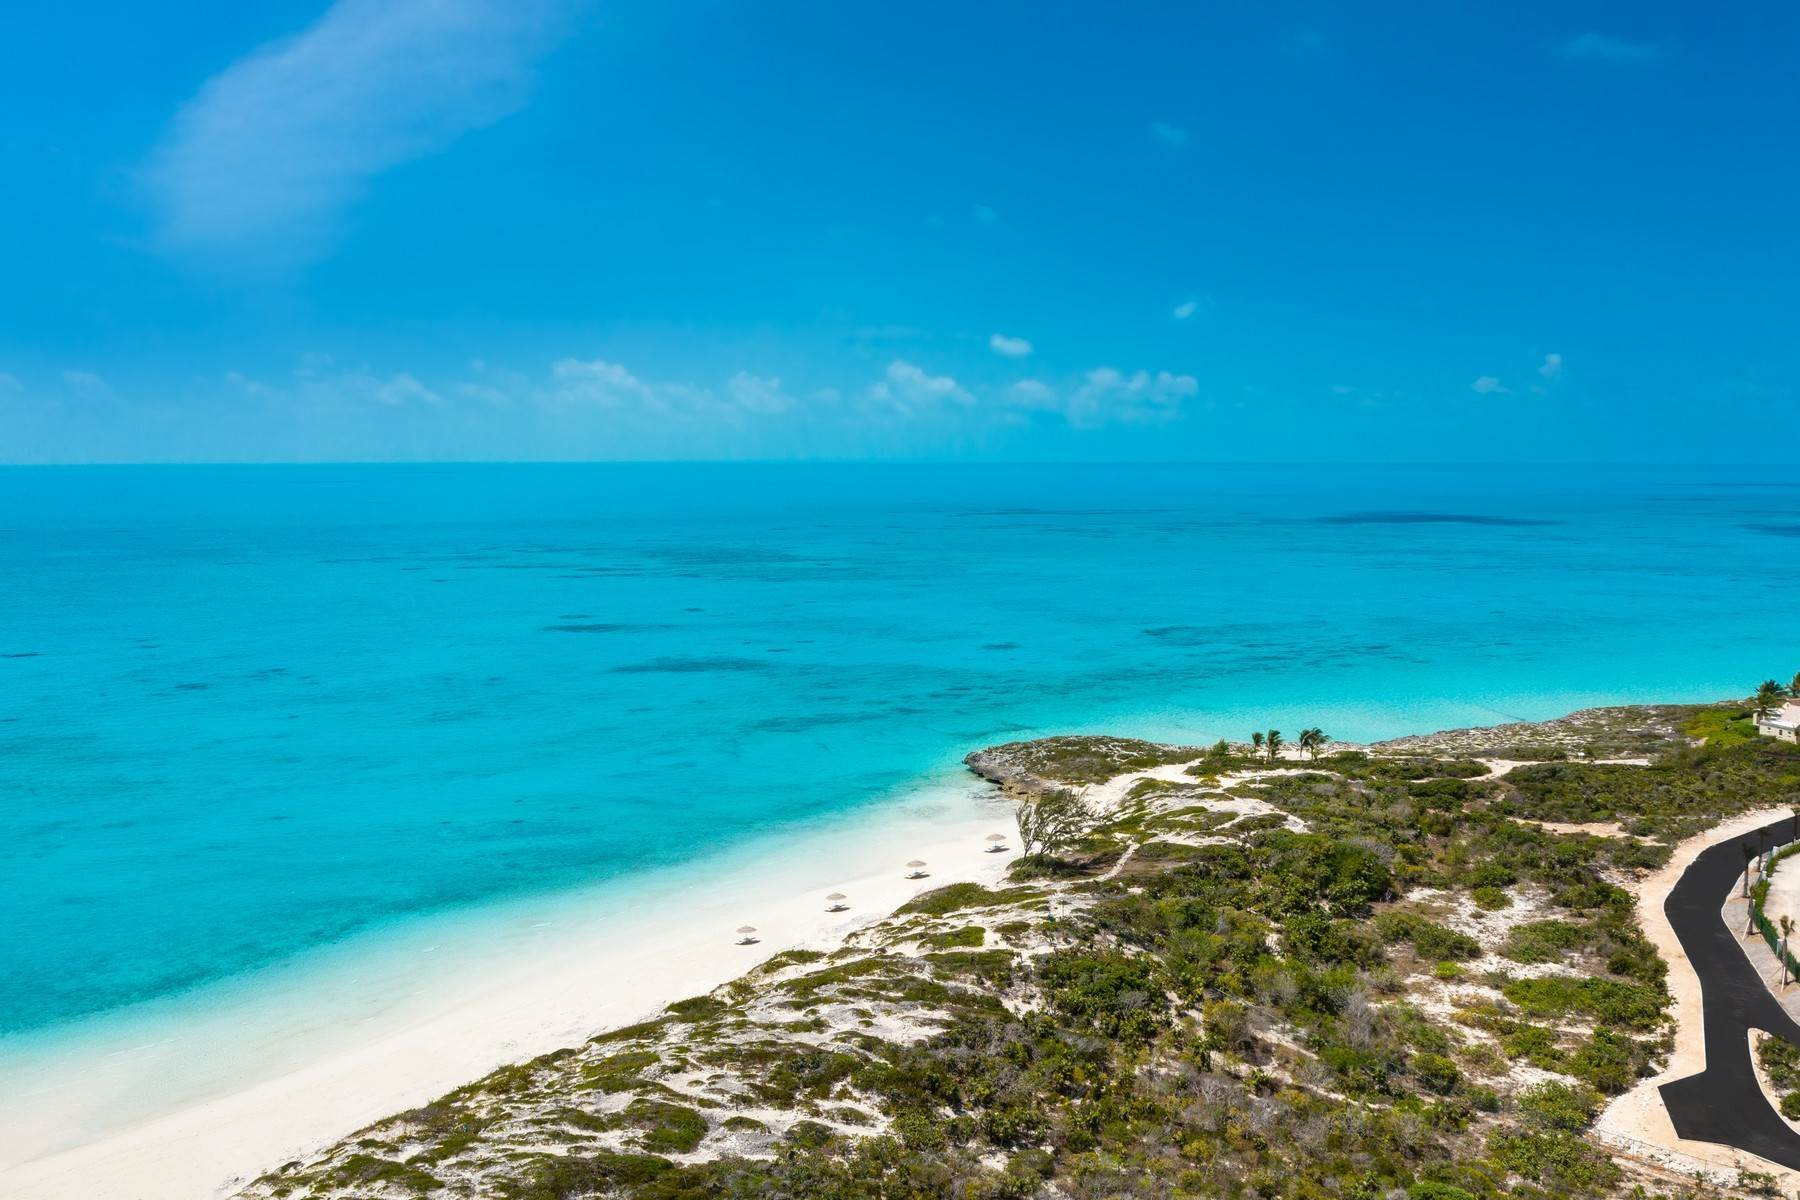 15. Single Family Homes for Sale at LONG BAY BEACH DUNE VILLA 1 AT SOUTH BANK - THE OCEAN ESTATE South Bank, Long Bay, Providenciales Turks And Caicos Islands